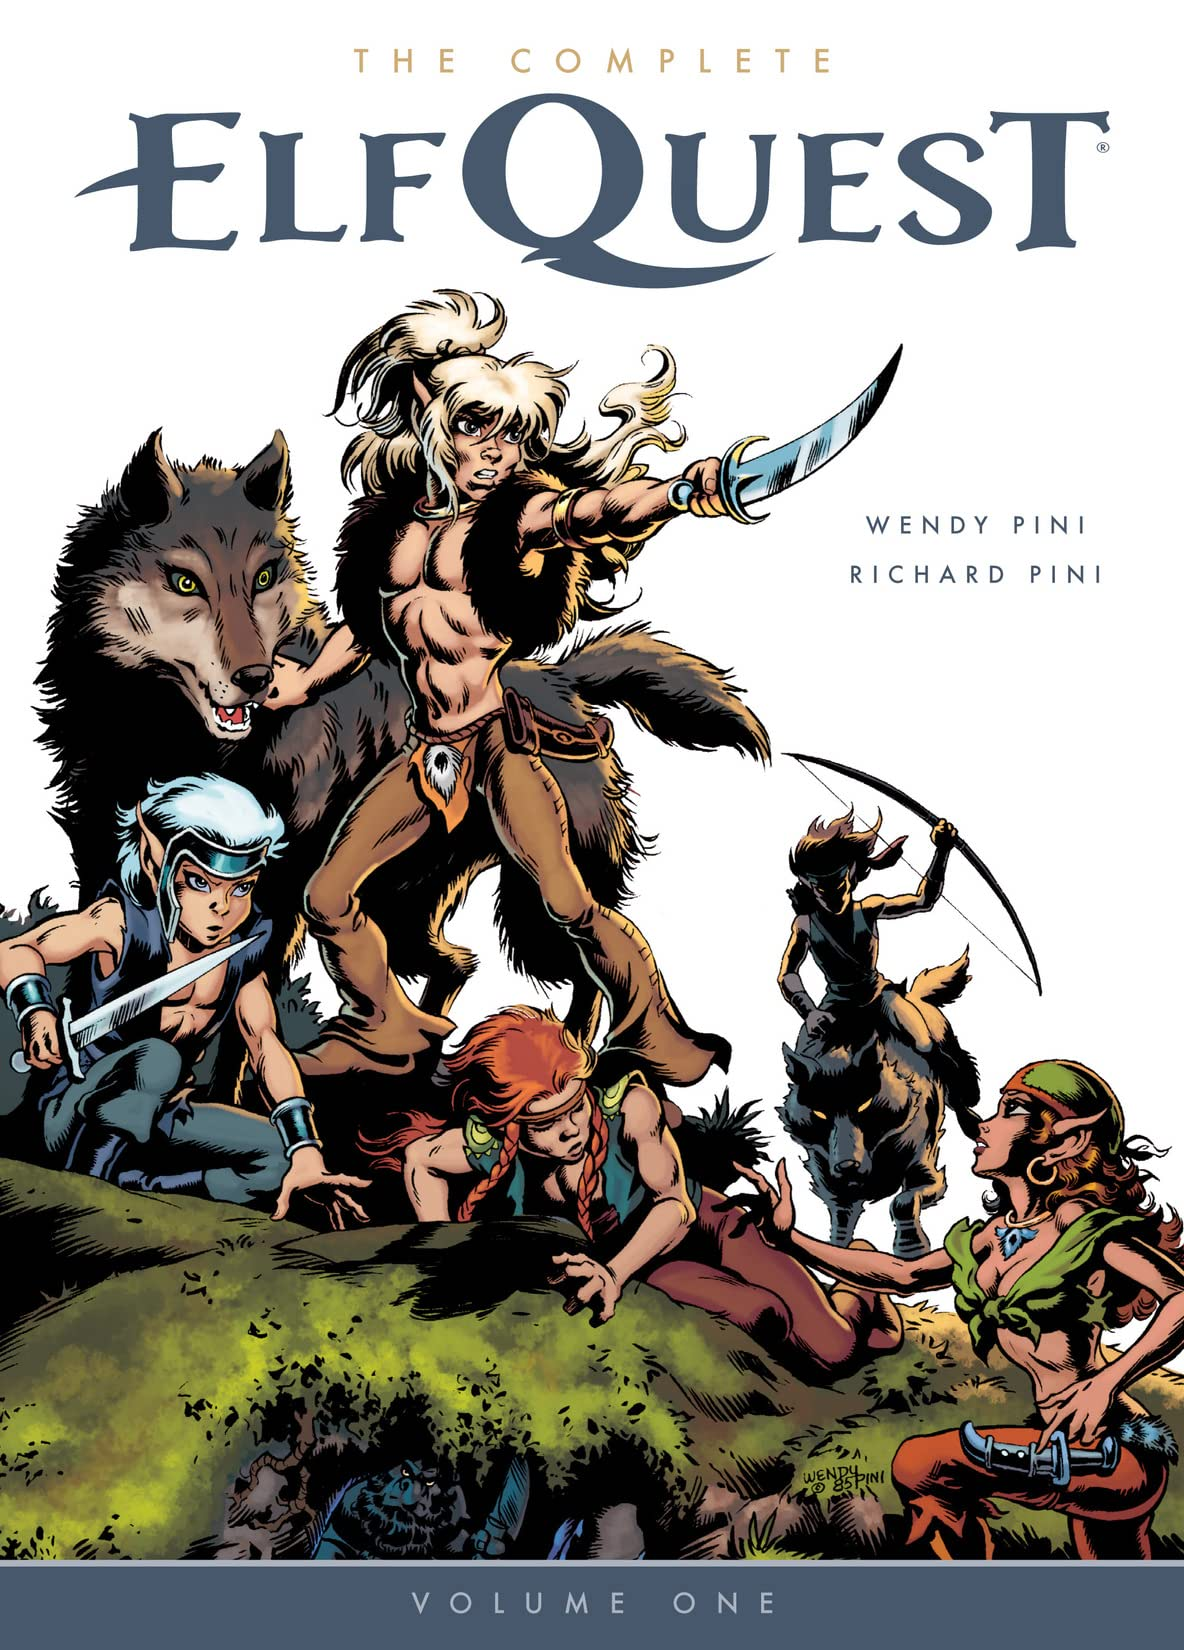 The Complete Elfquest Vol. 1: The Original Quest